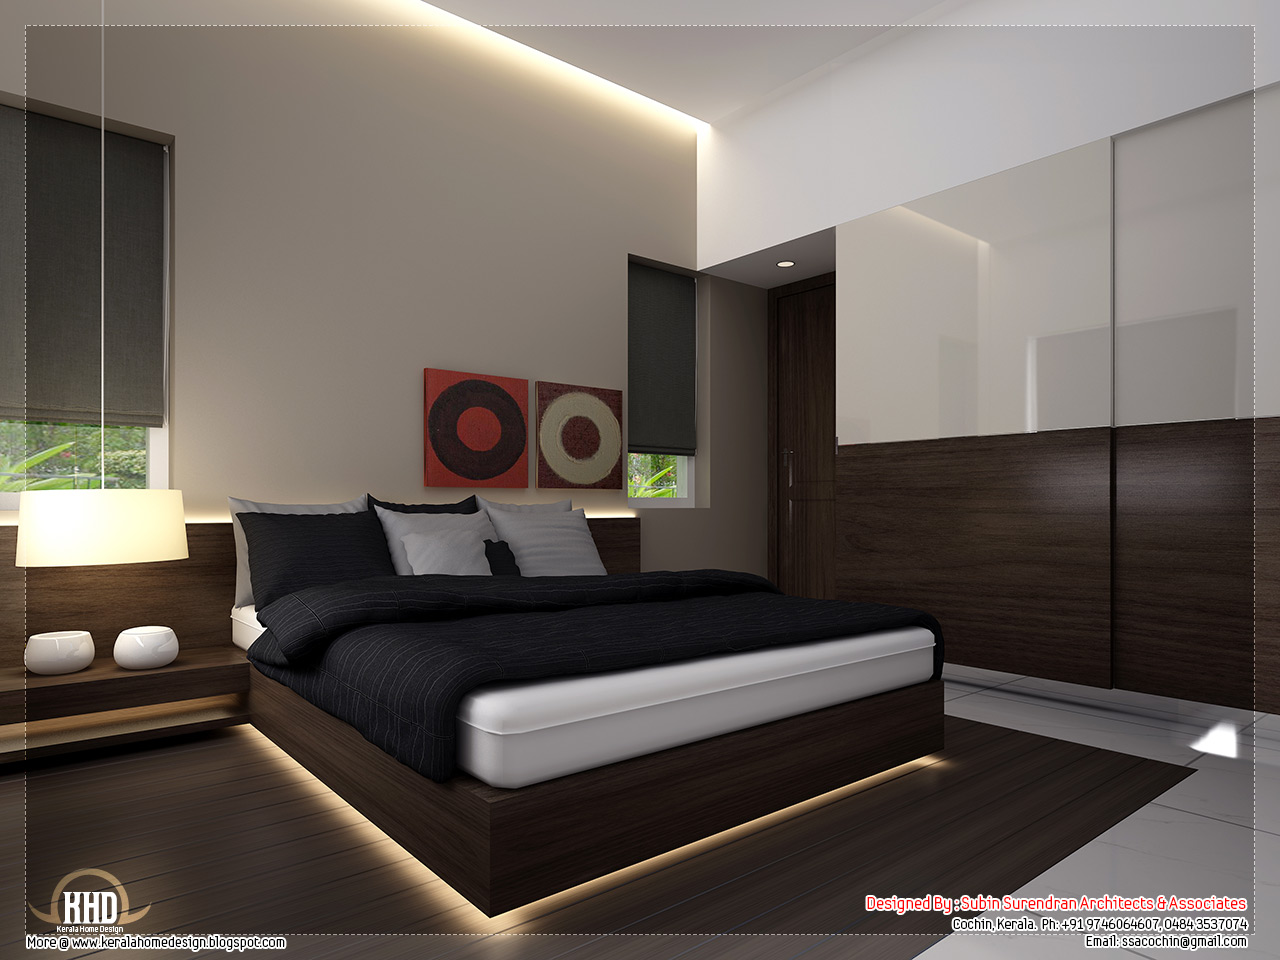 Beautiful home interior designs kerala homes for Interior bed design images